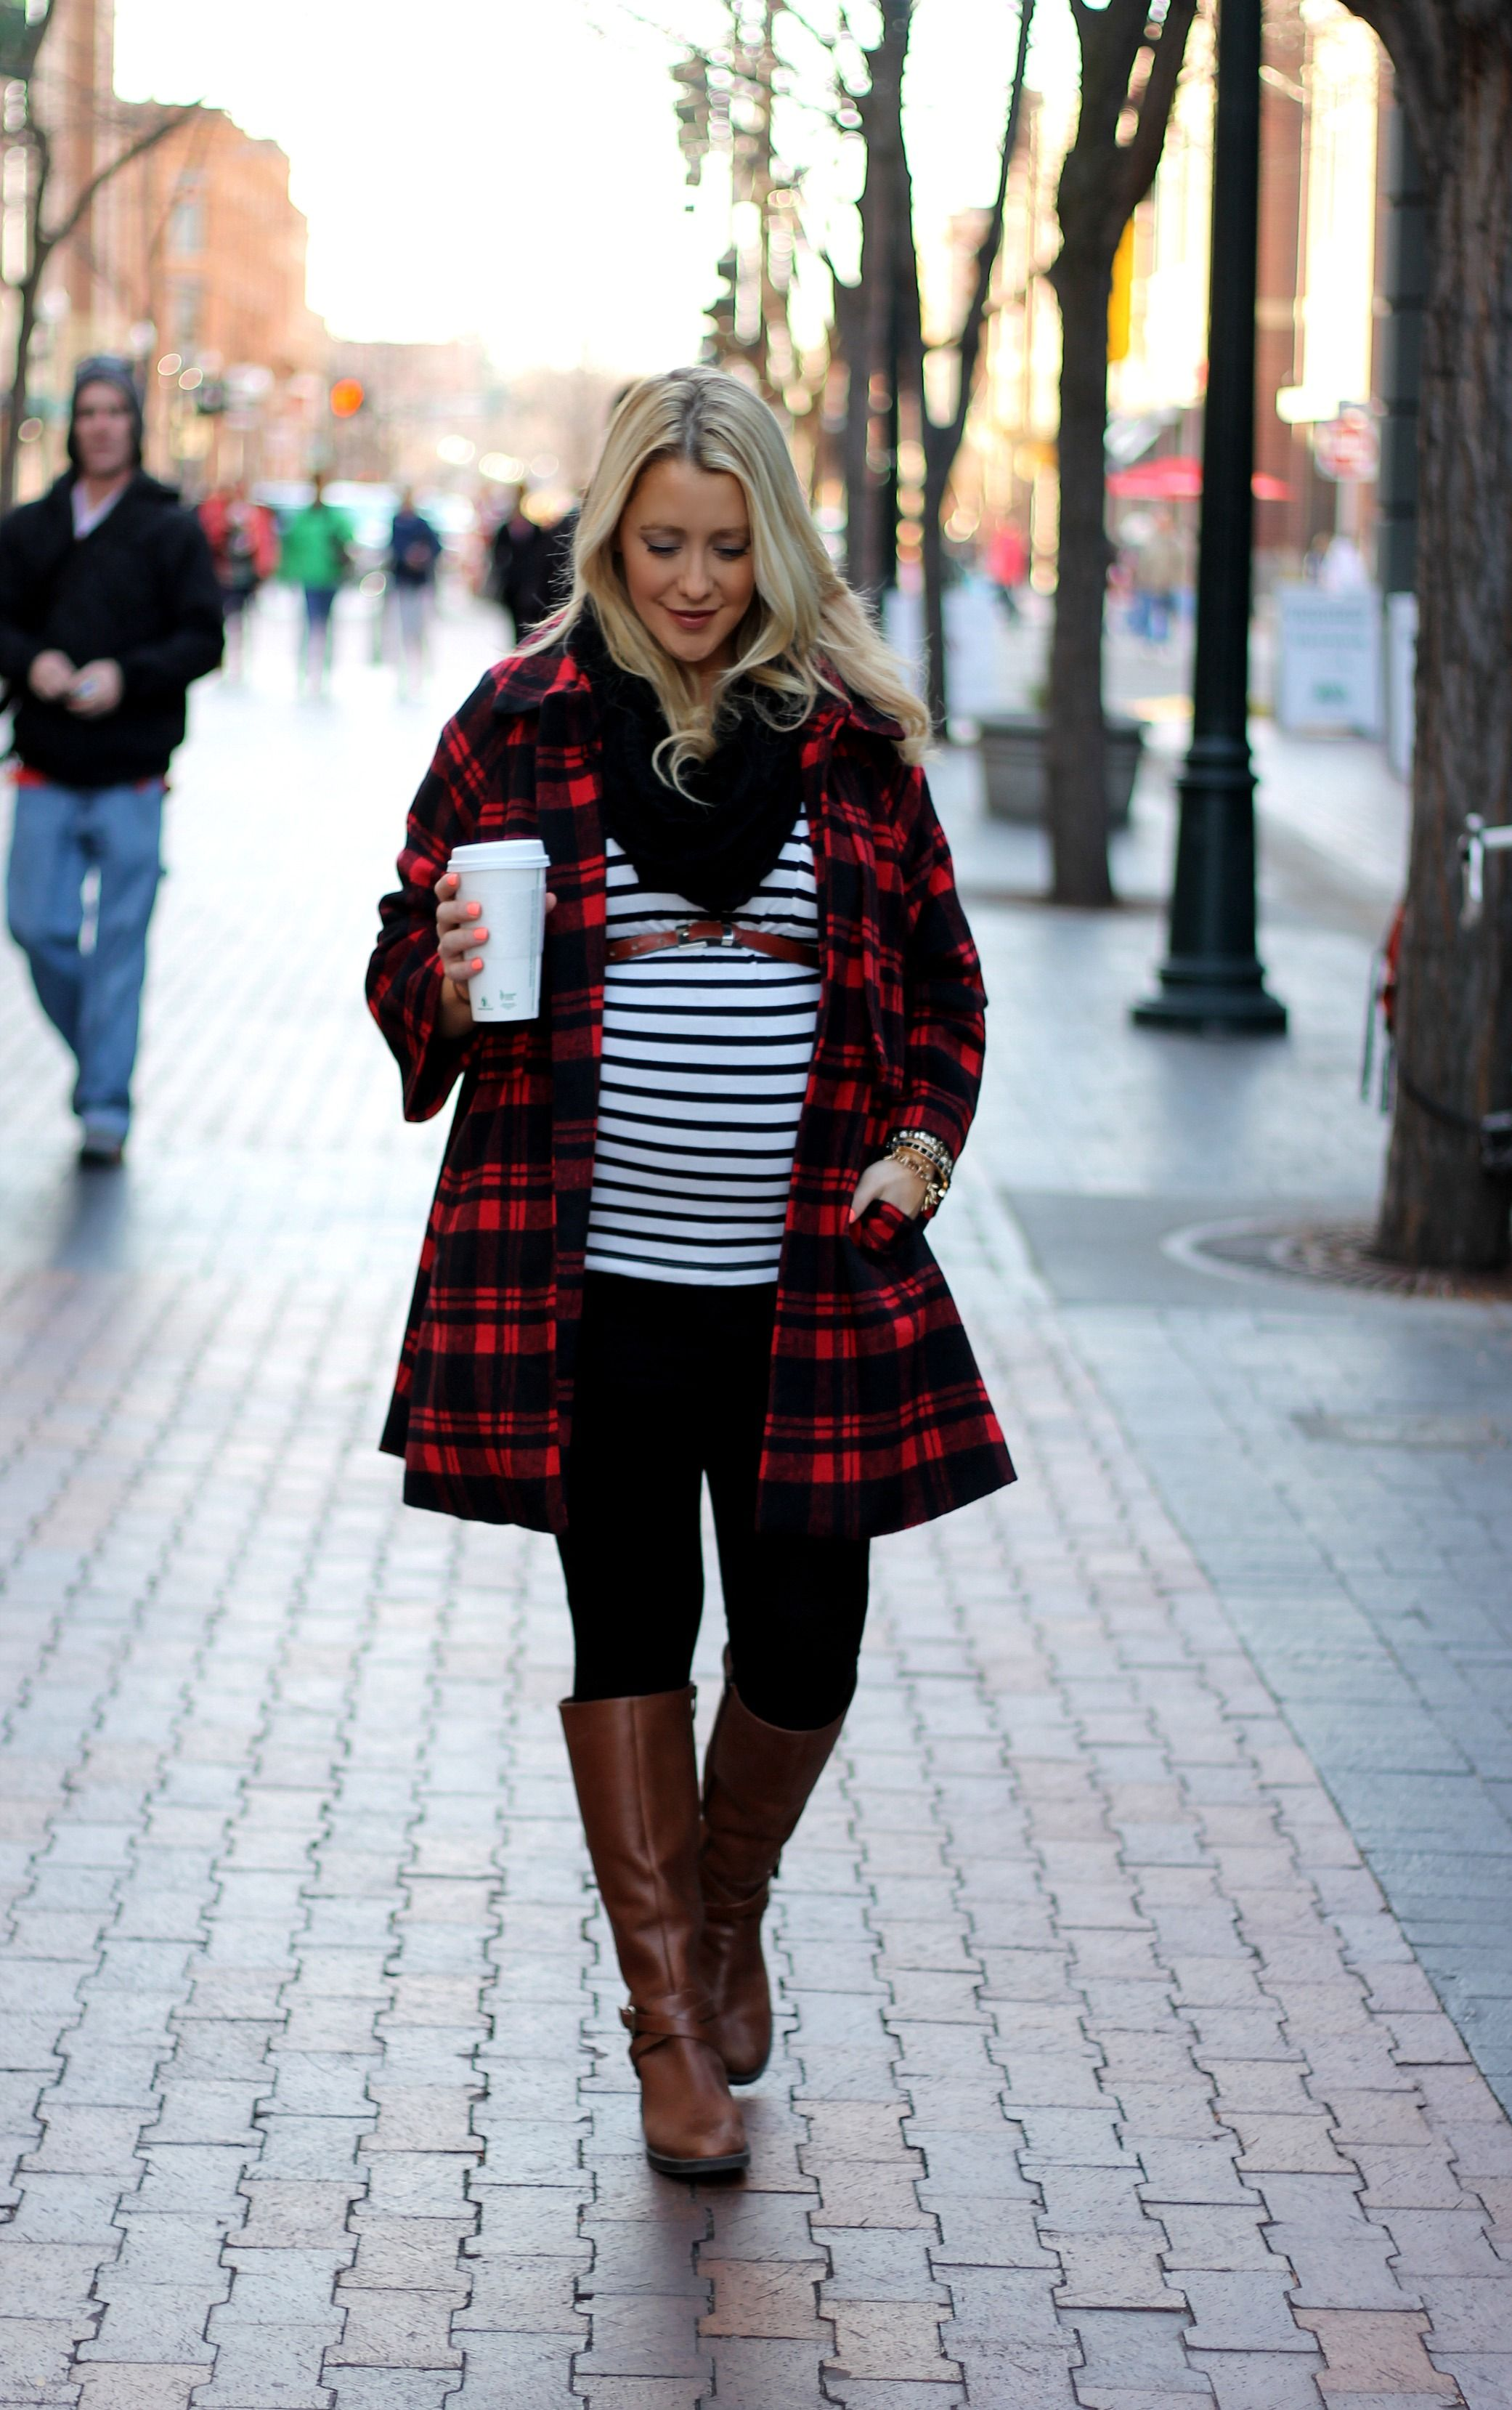 Positiekleding Sale Cute Winter Maternity Outfit With Plaid And Stripes Maternity